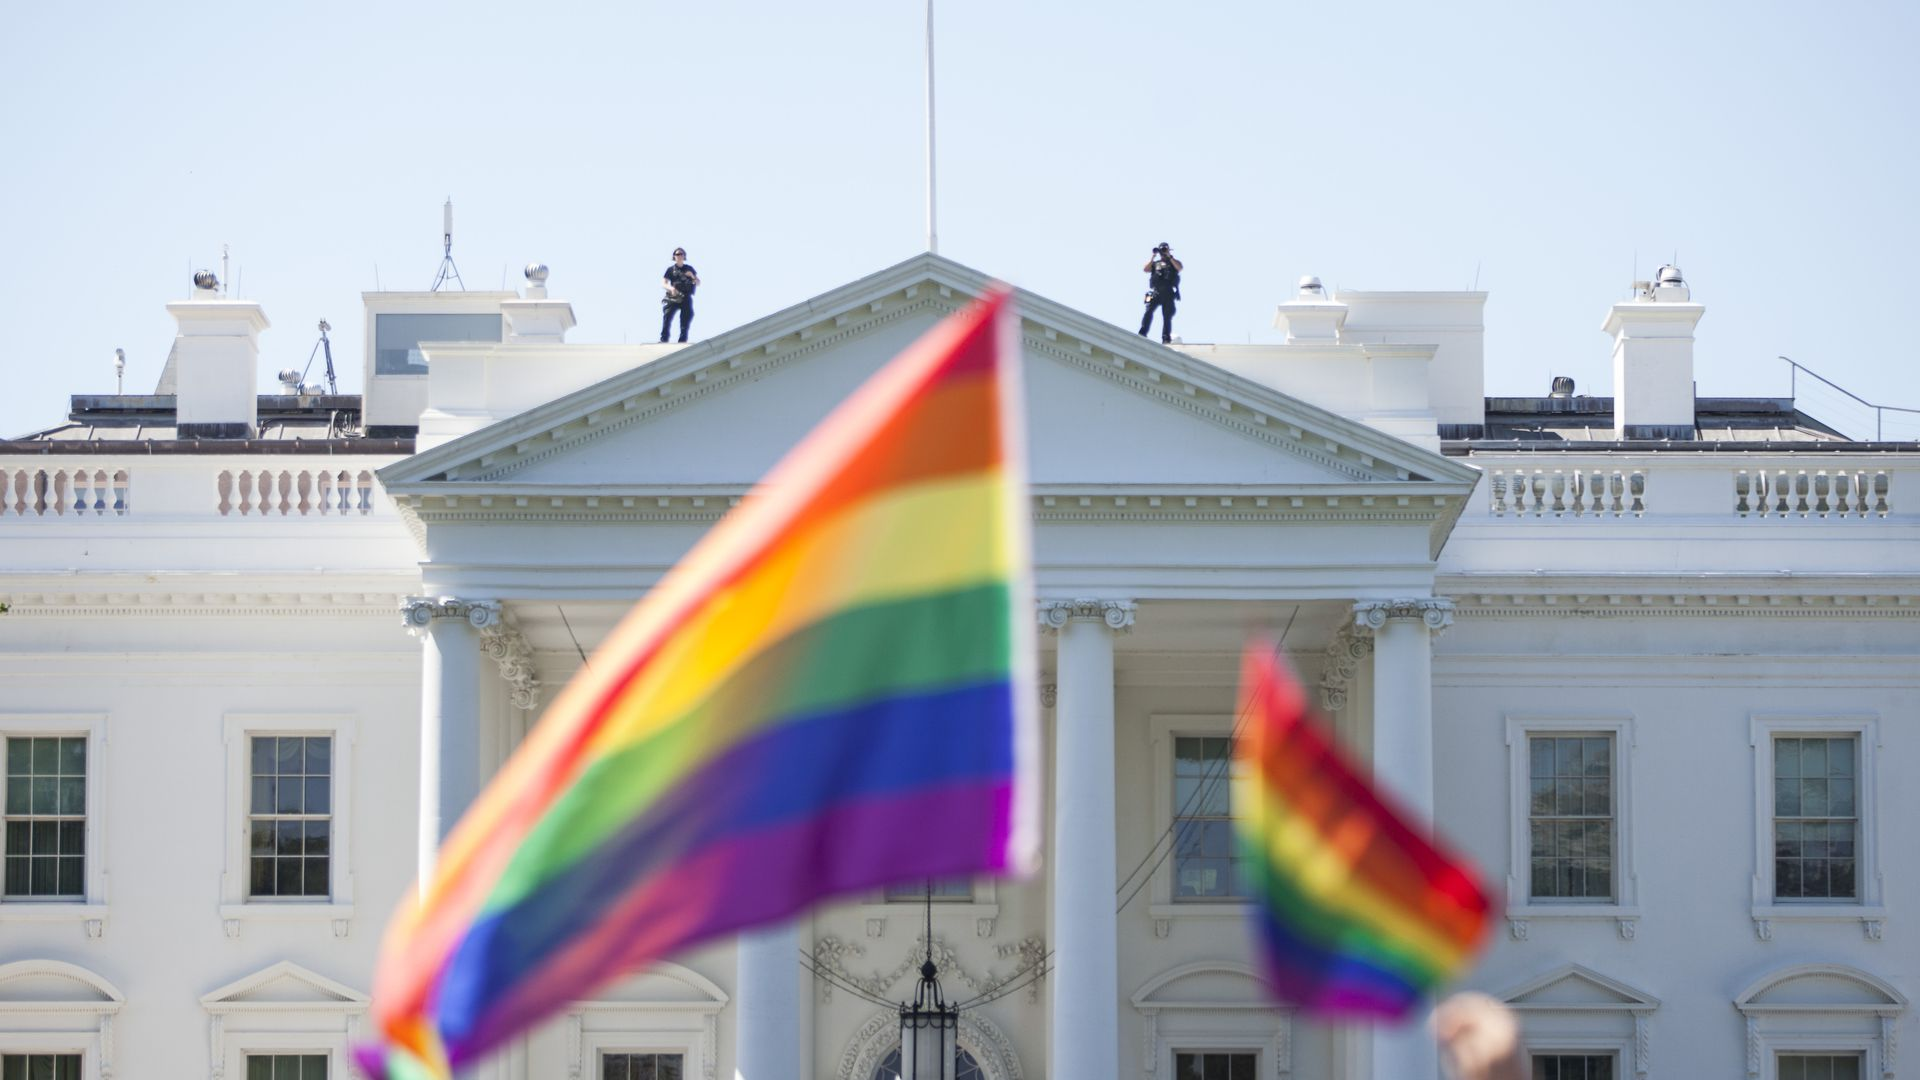 Rainbow flags in the foreground of a shot of the White House' south lawn